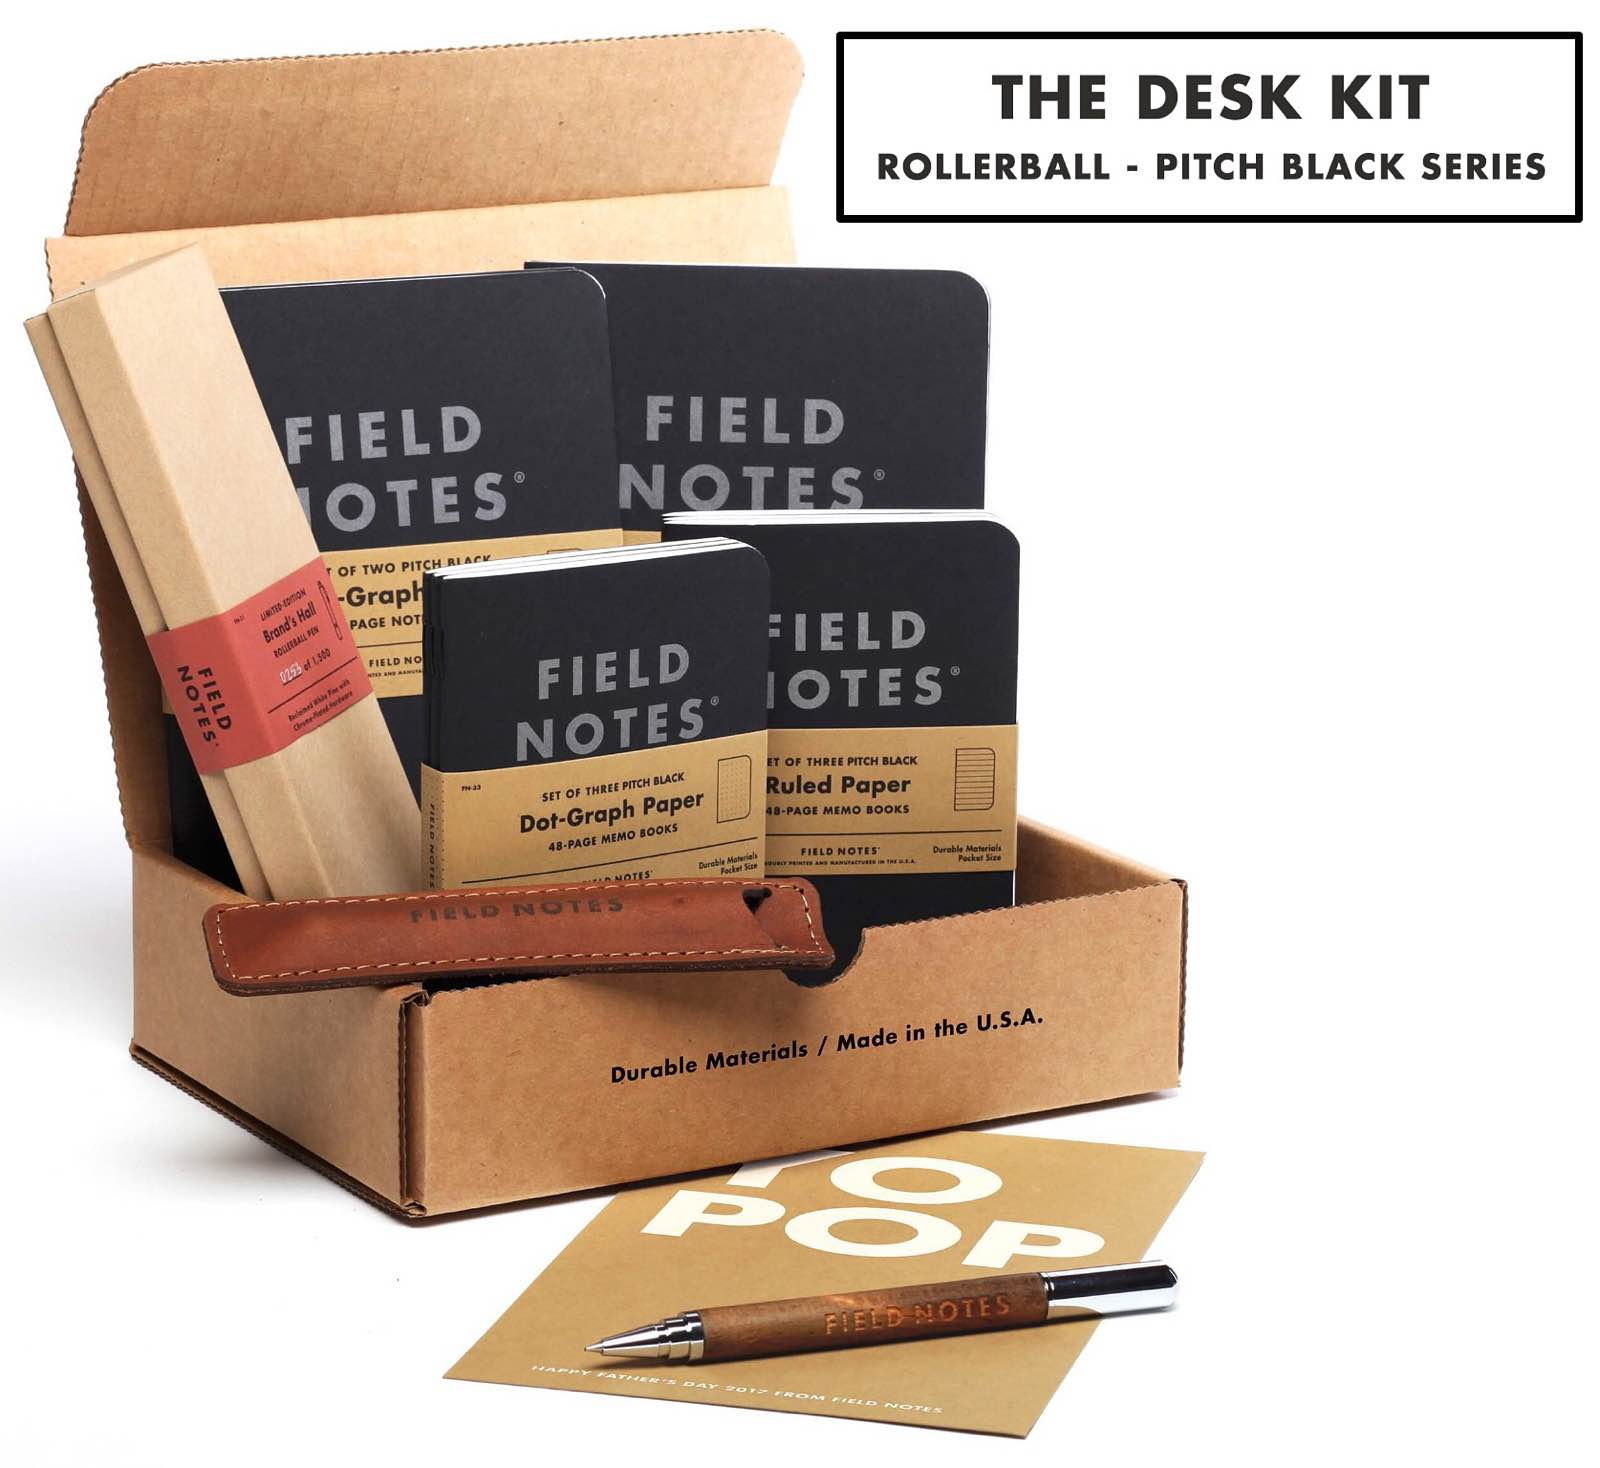 field-notes-fathers-day-kits-desk